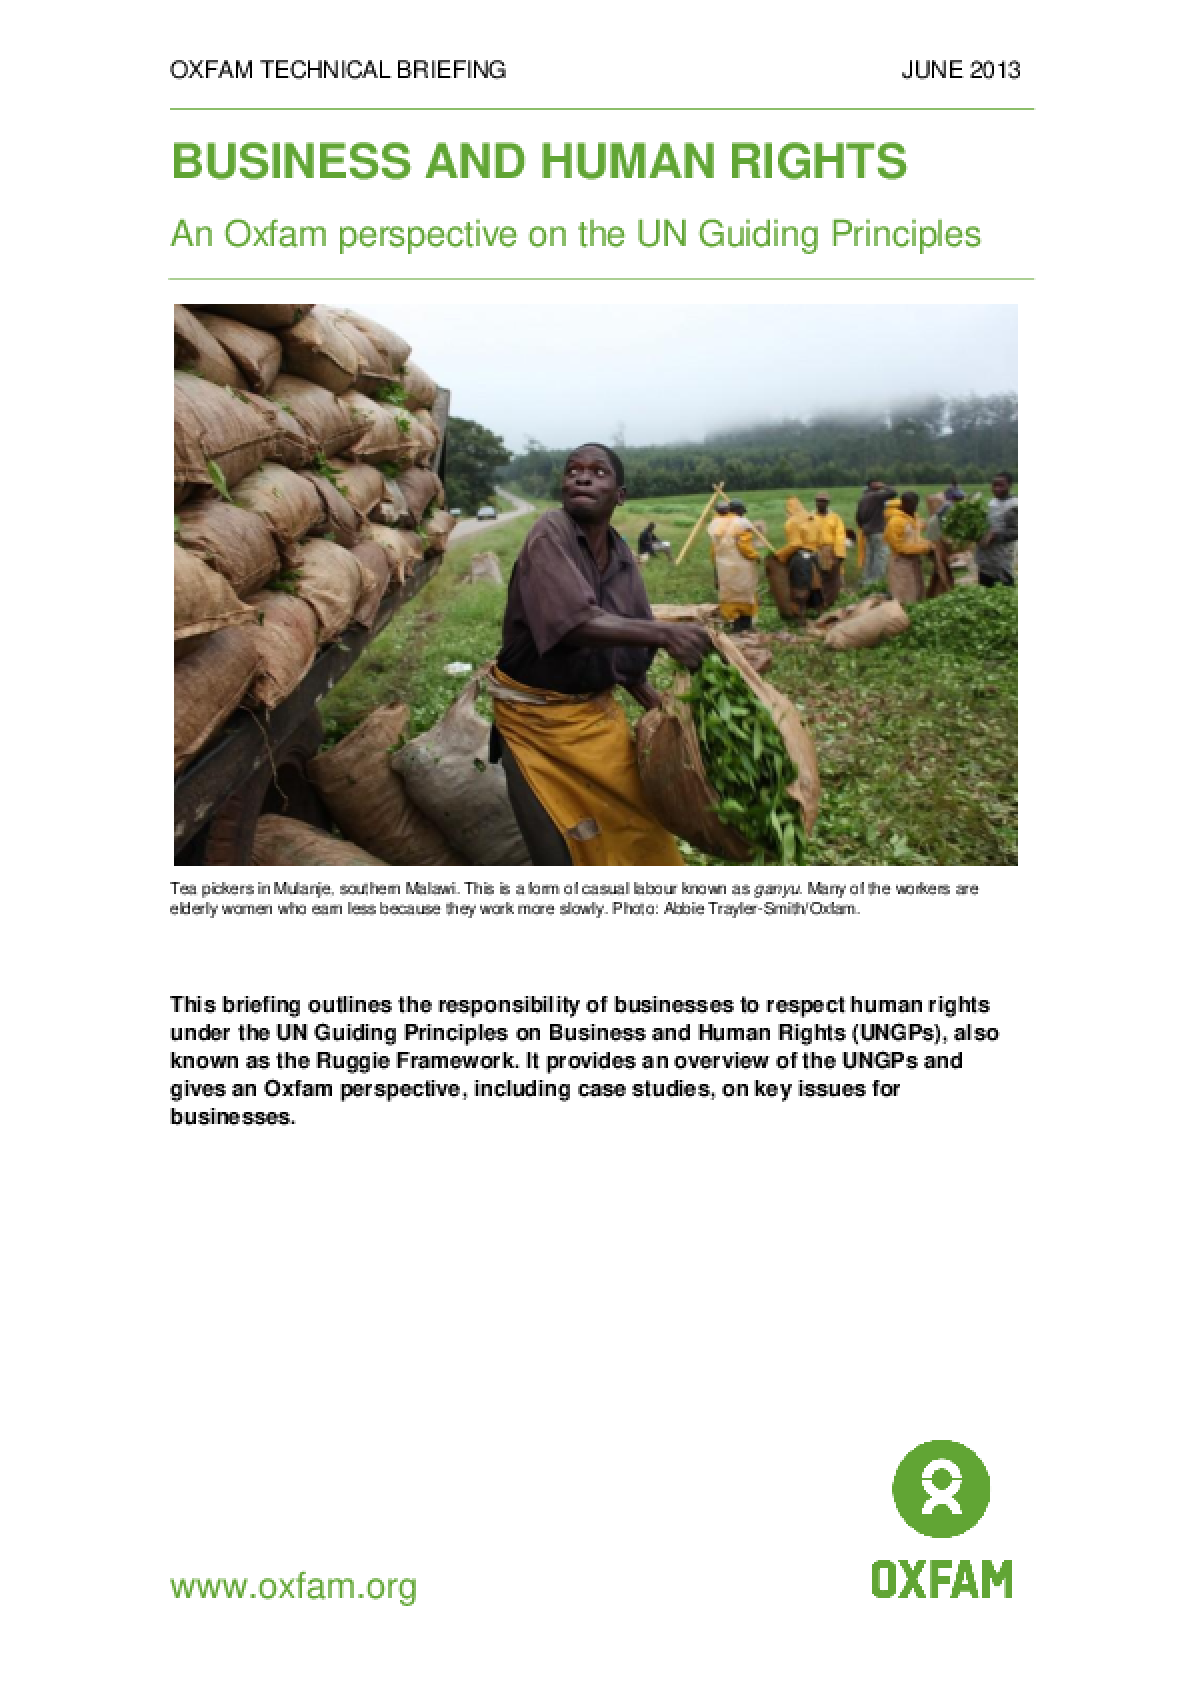 Business and Human Rights: An Oxfam perspective on the UN Guiding Principles